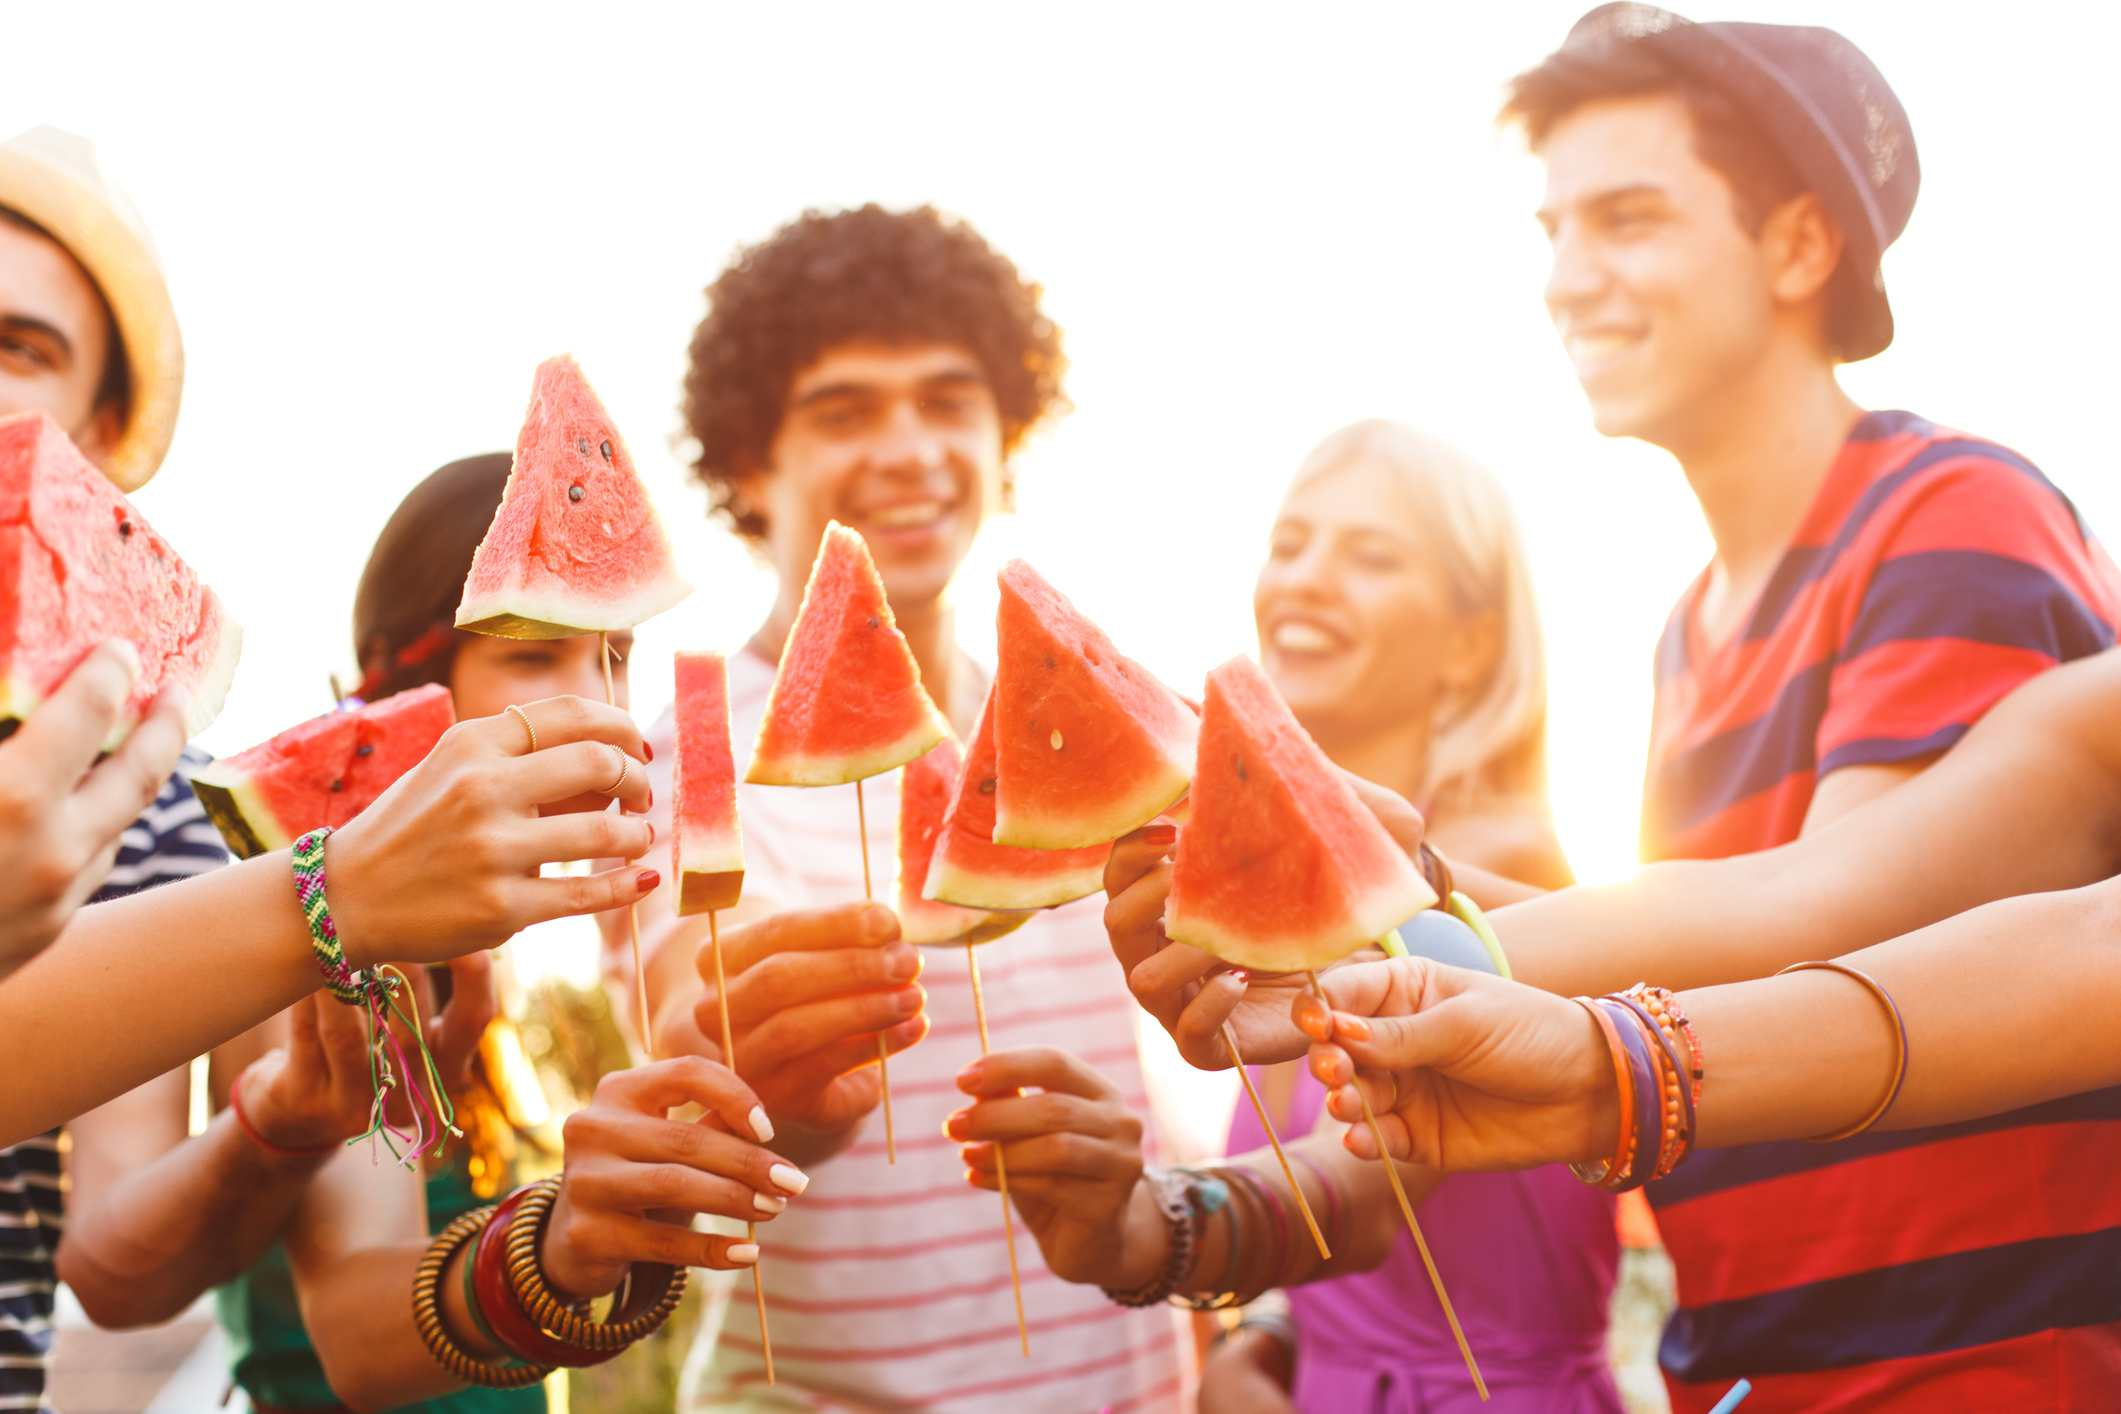 Group of people holding slices of watermelon on sticks.